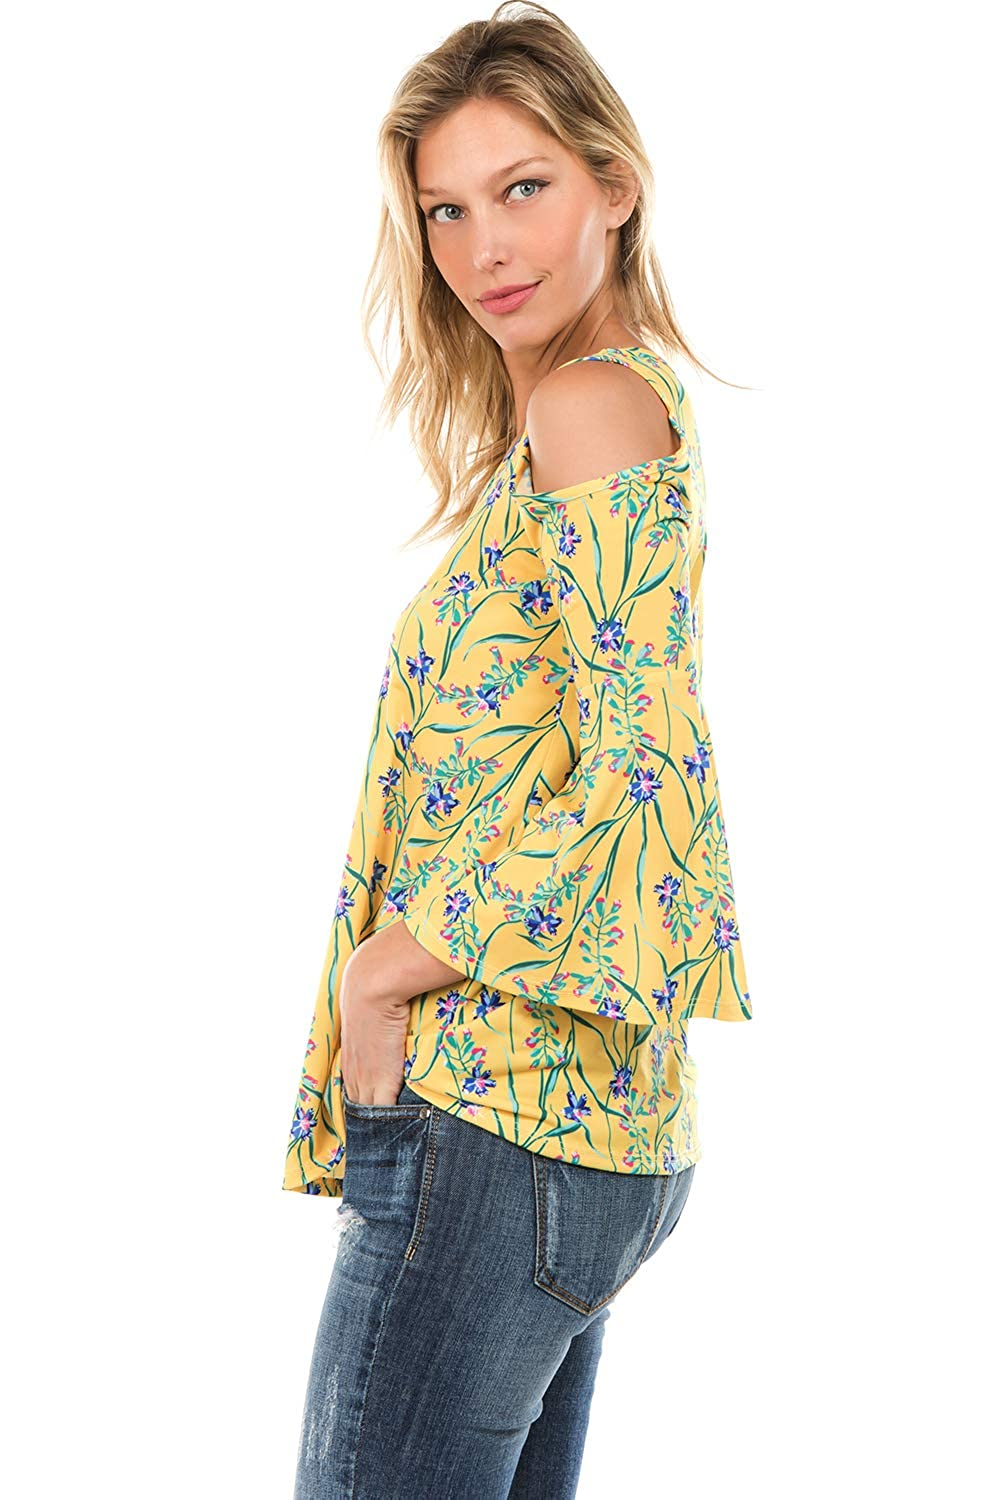 -VT7365 VAVA by Joy Han Womens Printed Brenda TOP Yellow